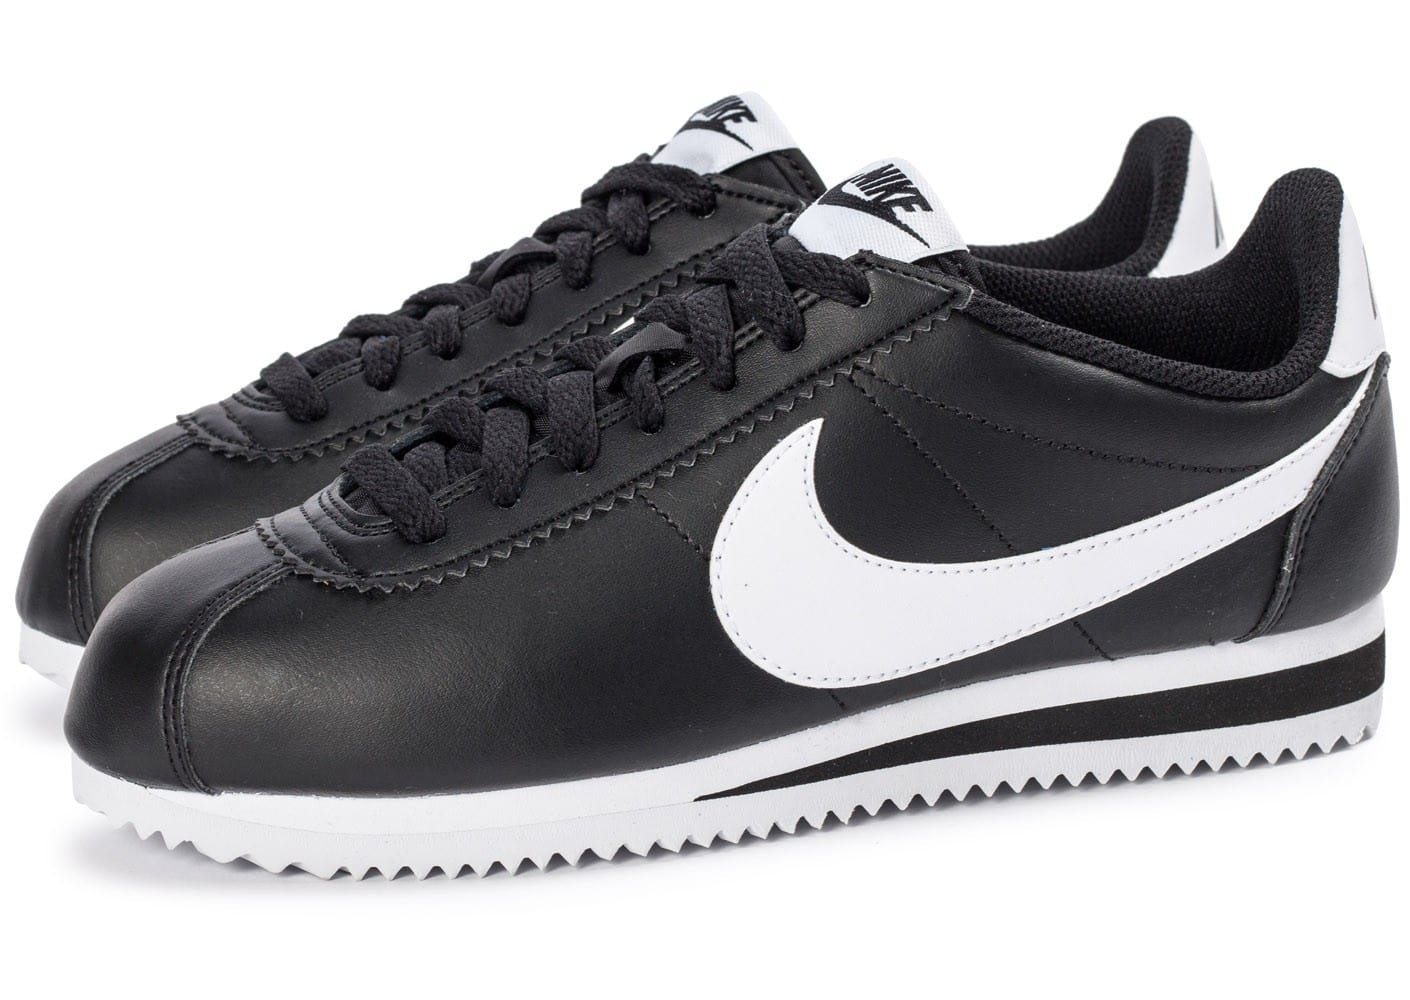 nike classic cortez leather noire et blanche chaussures chaussures chausport. Black Bedroom Furniture Sets. Home Design Ideas